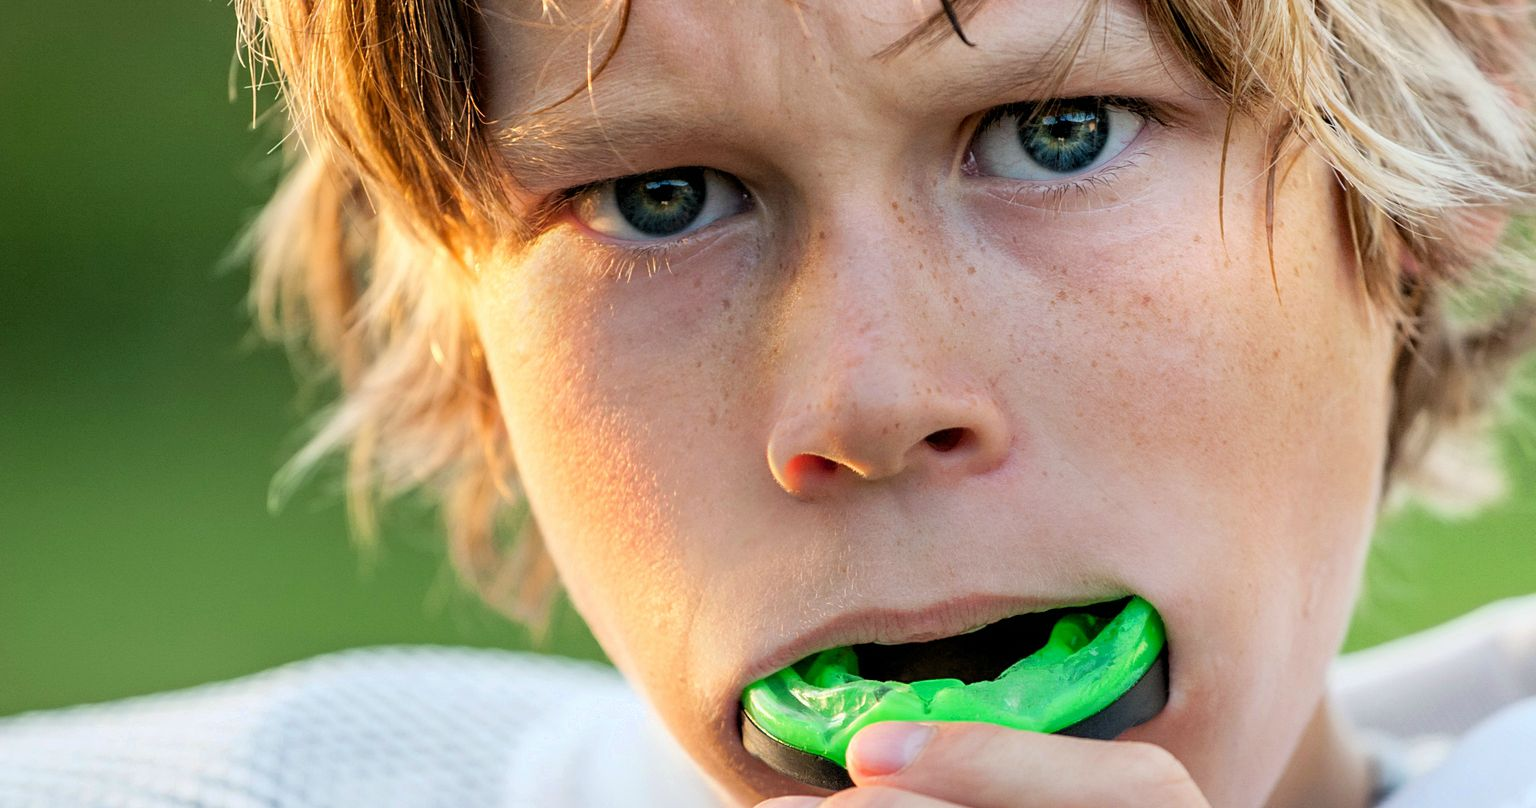 mouth guards are excellent protection for teeth